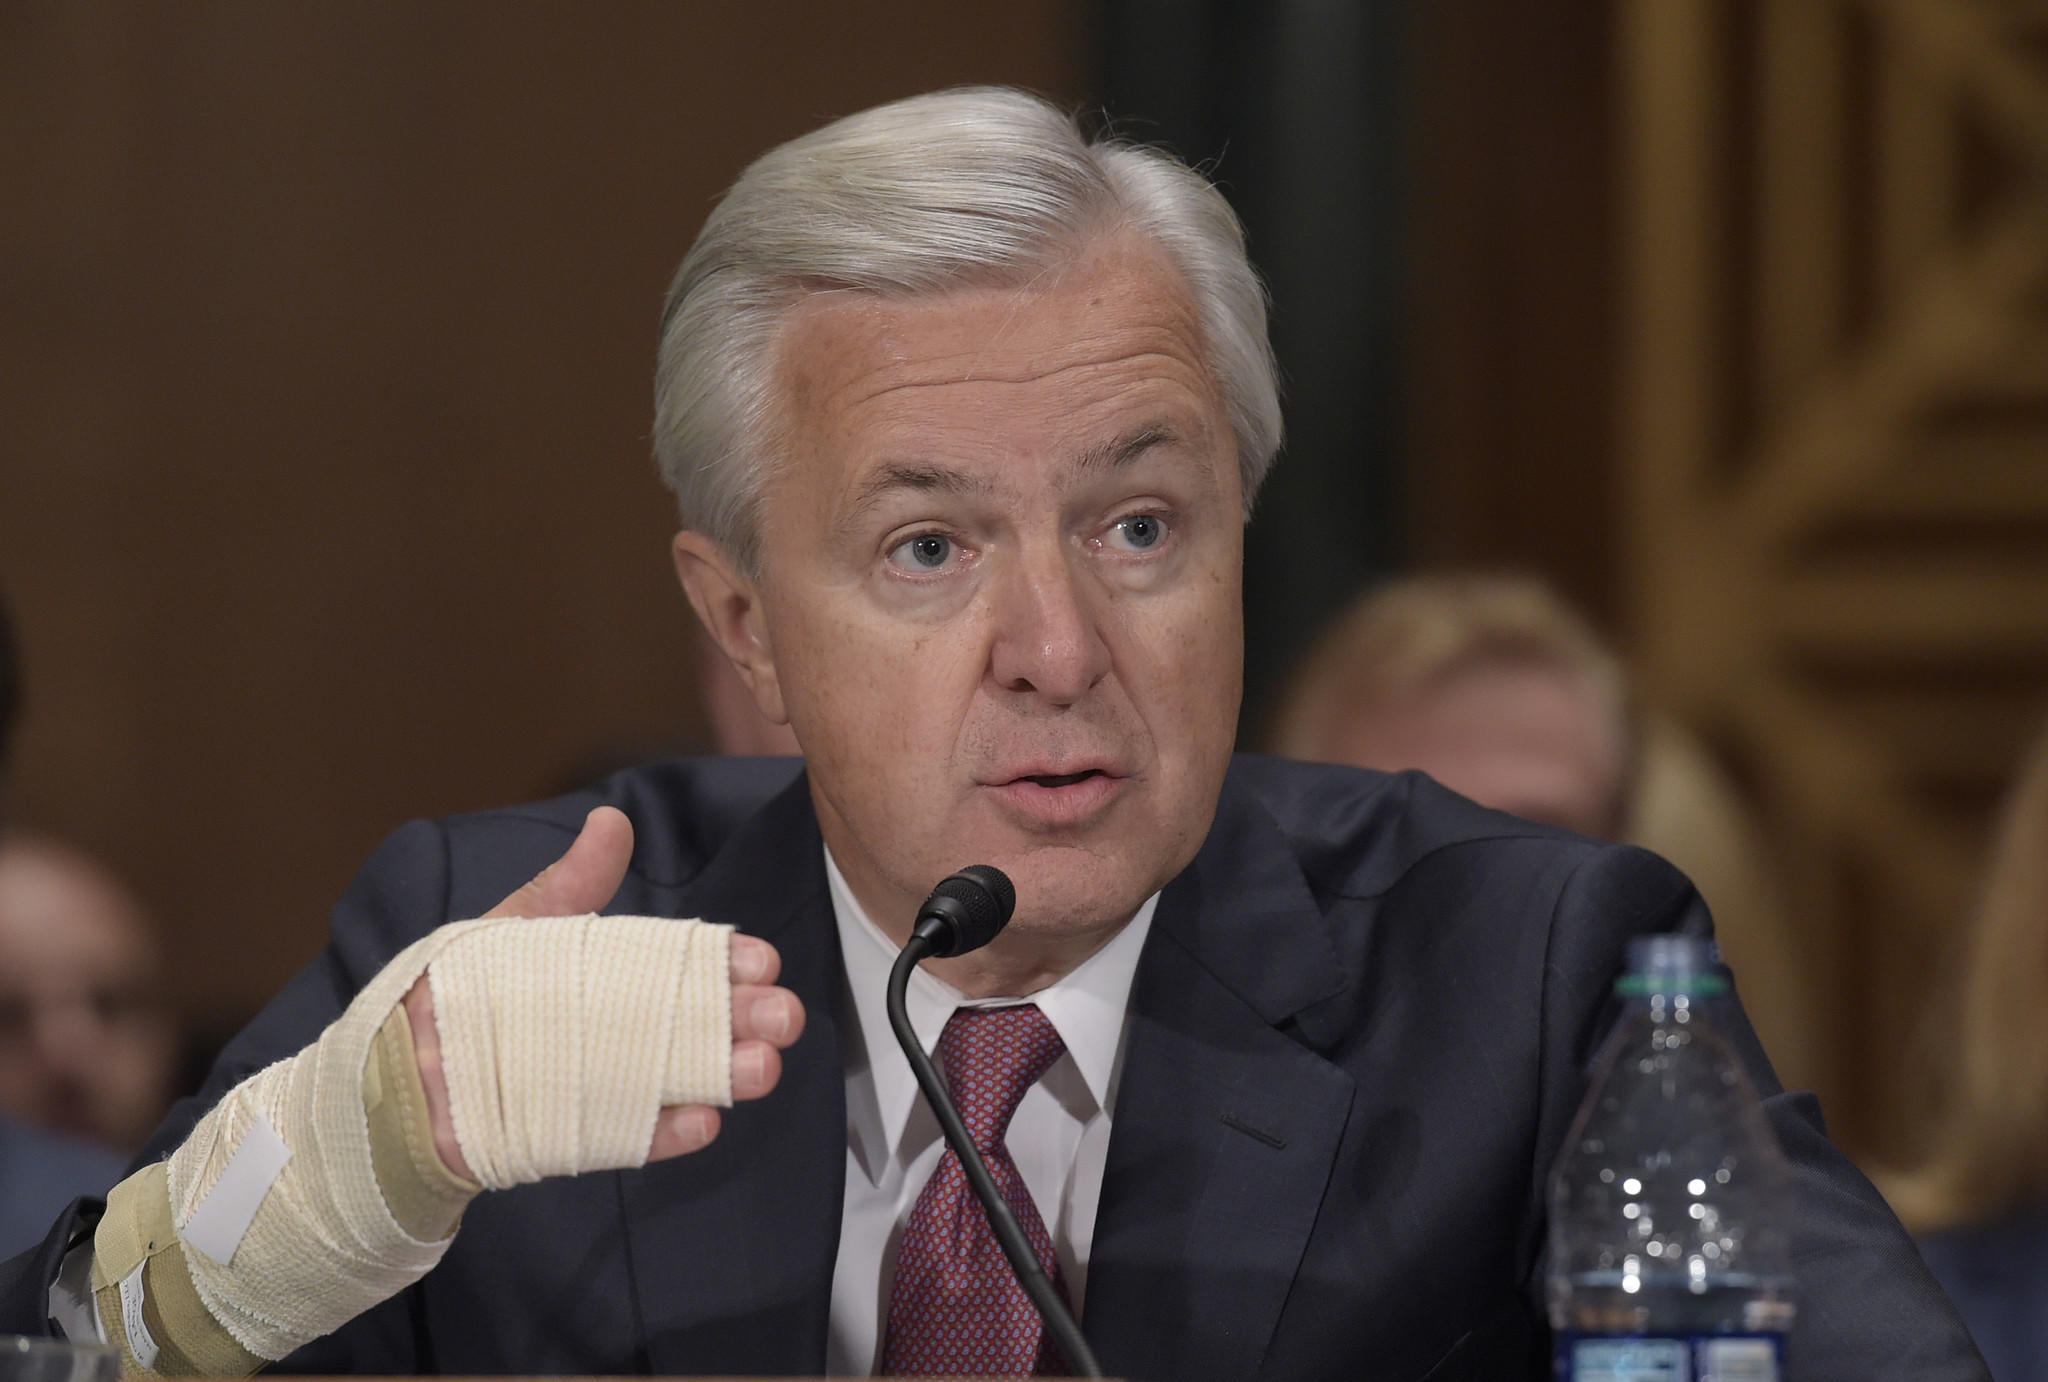 Wells Fargo CEO John Stumpf testifies last week on Capitol Hill before the Senate Banking Committee. (Susan Walsh / Associated Press)